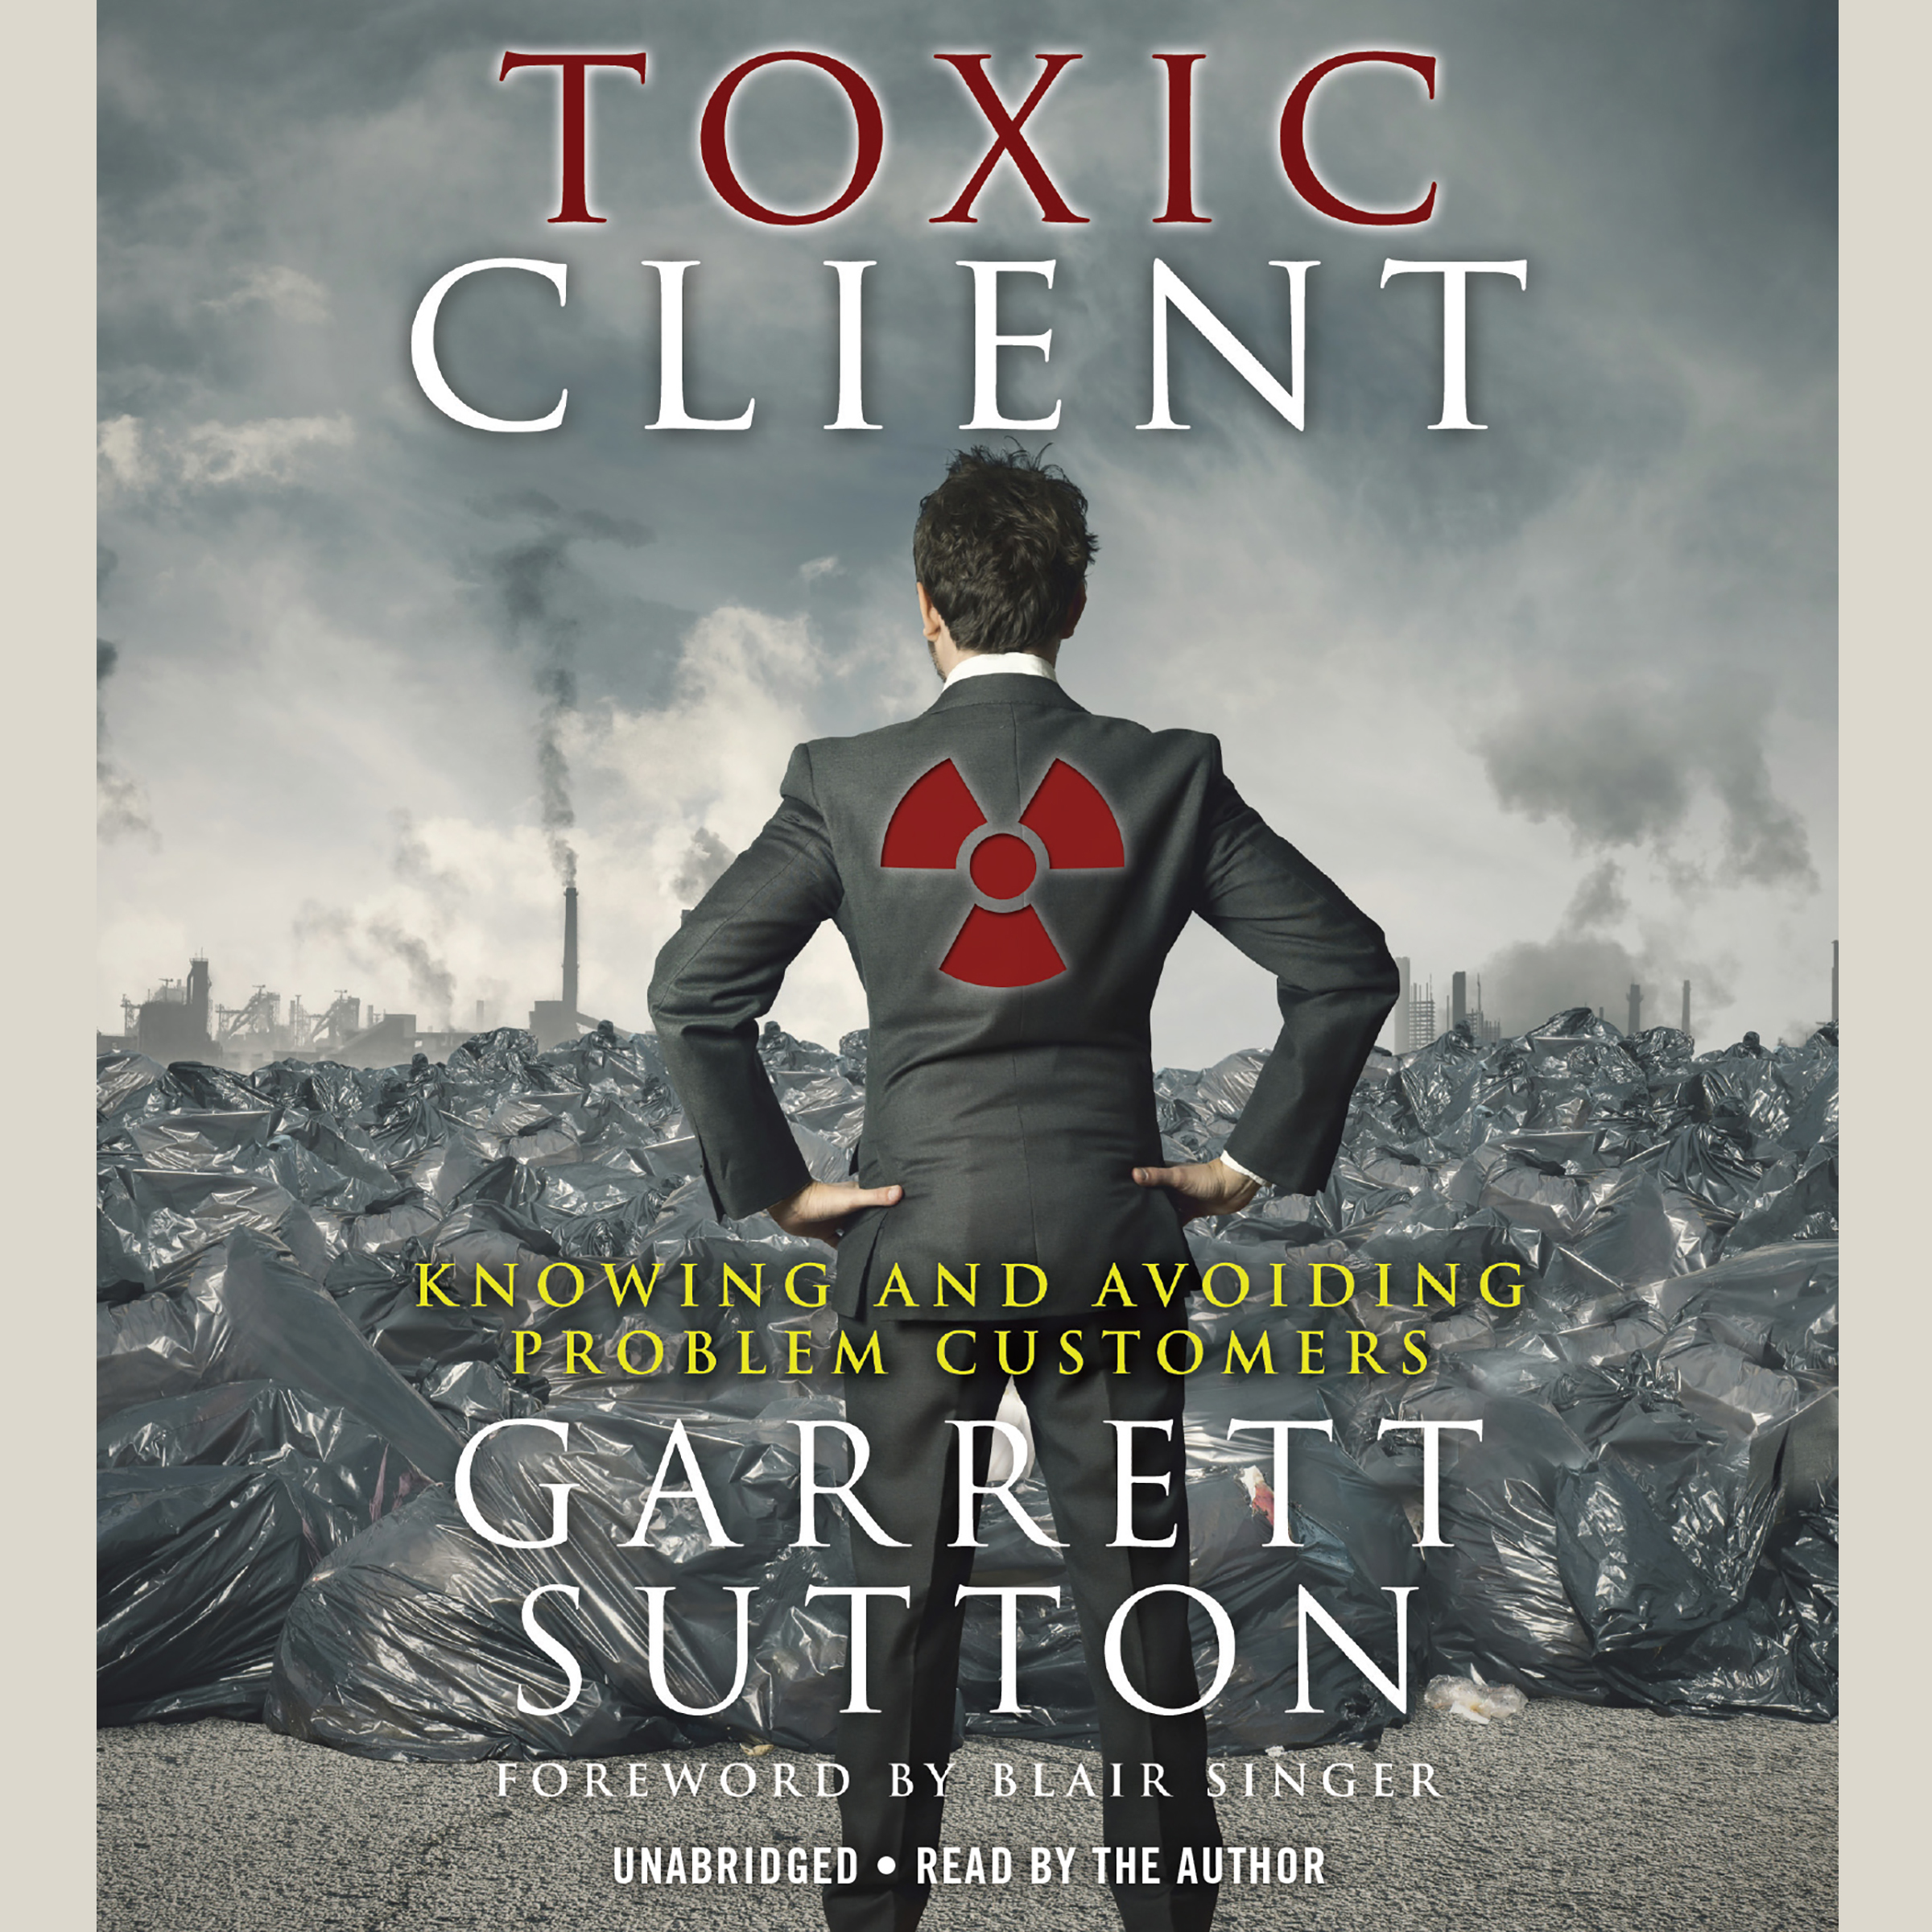 Printable The Toxic Client: Knowing and Avoiding Problem Customers Audiobook Cover Art